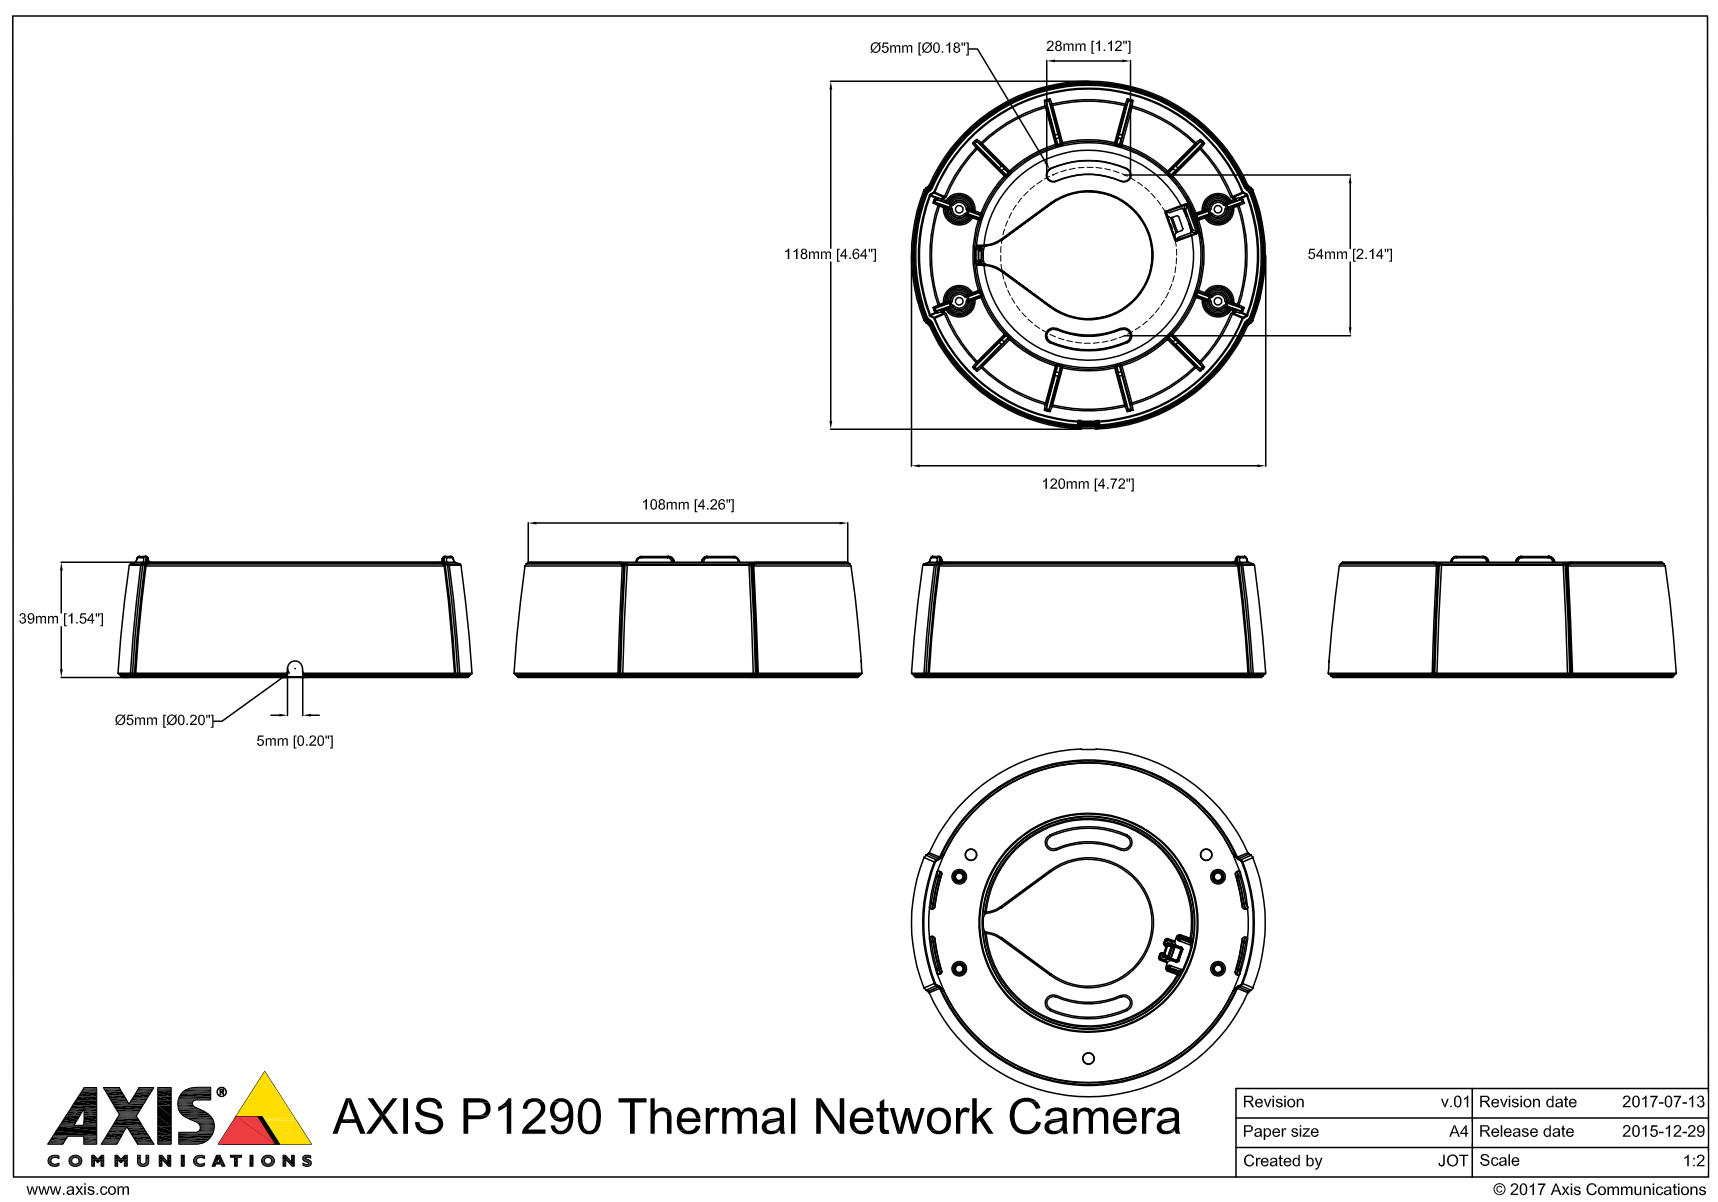 Axis P1290 Thermal Network Camera 01168-001